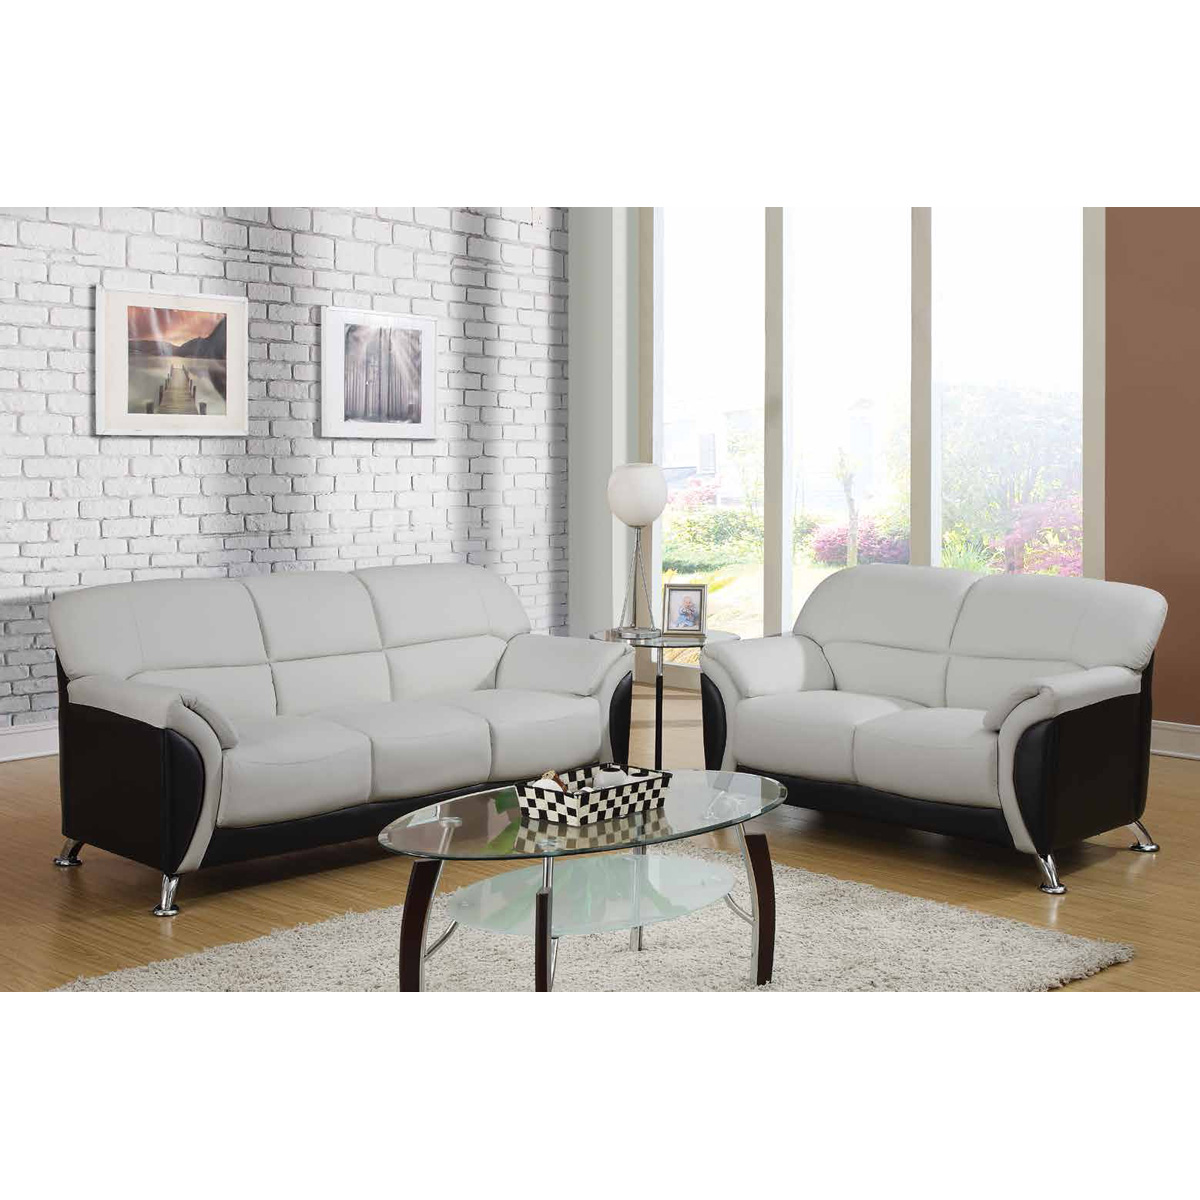 Maxwell Sofa Set in Light Gray/Black